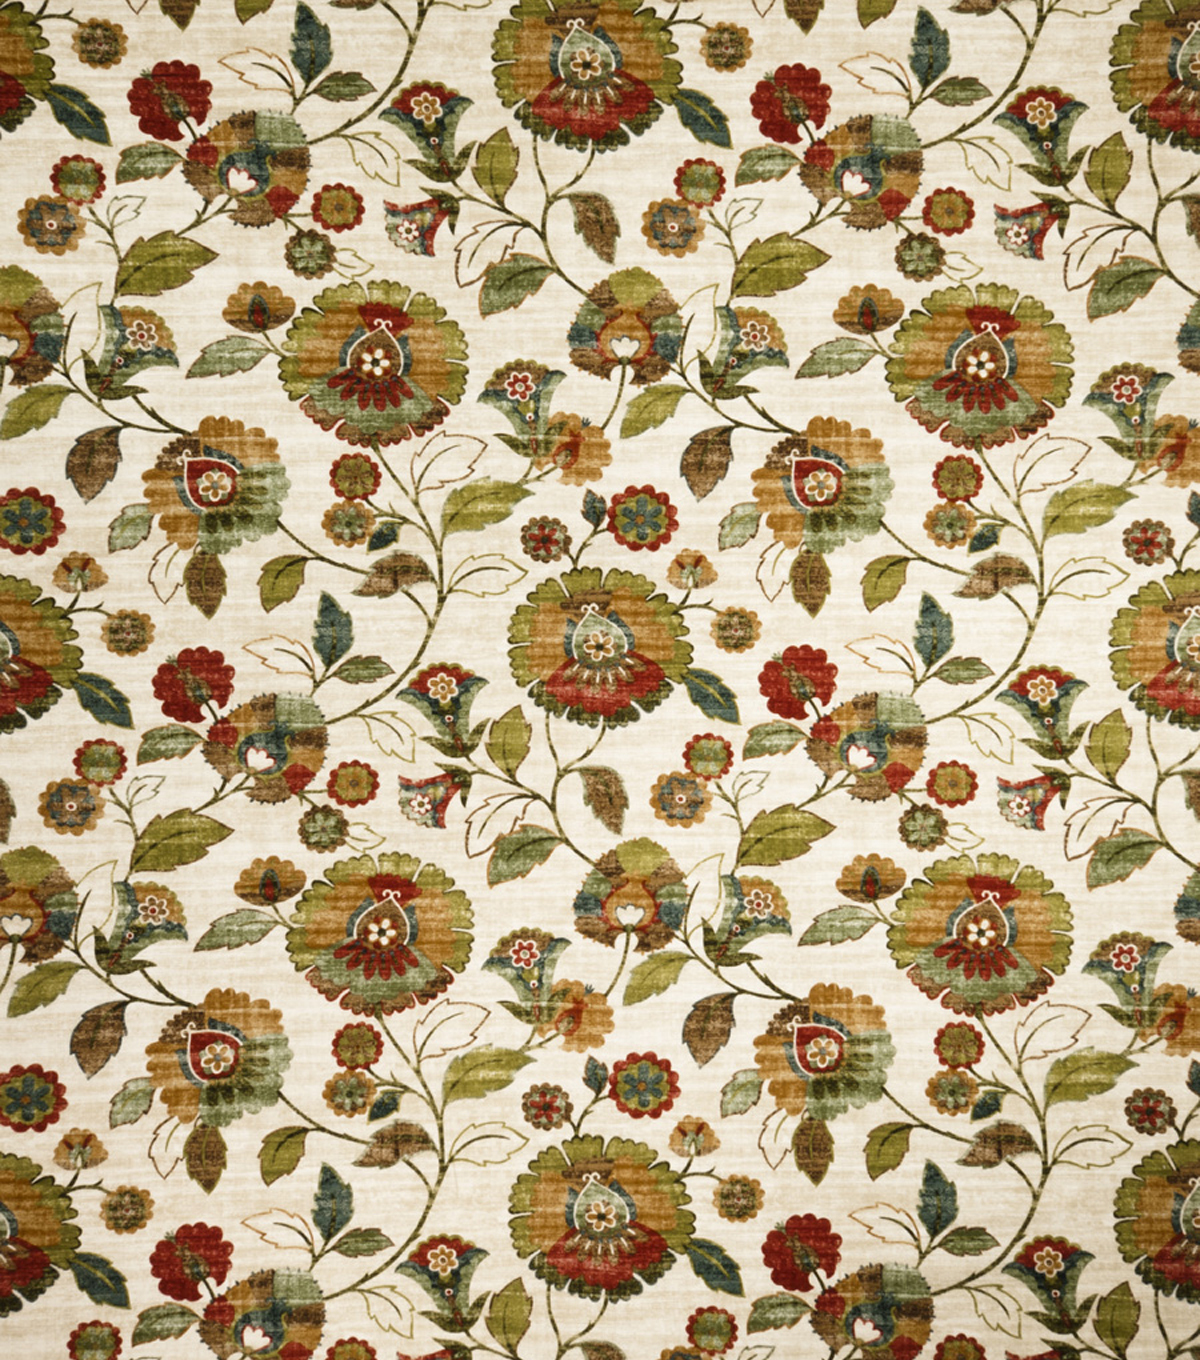 Home Decor 8\u0022x8\u0022 Fabric Swatch-Upholstery Fabric SMC Designs Imagine Meadow